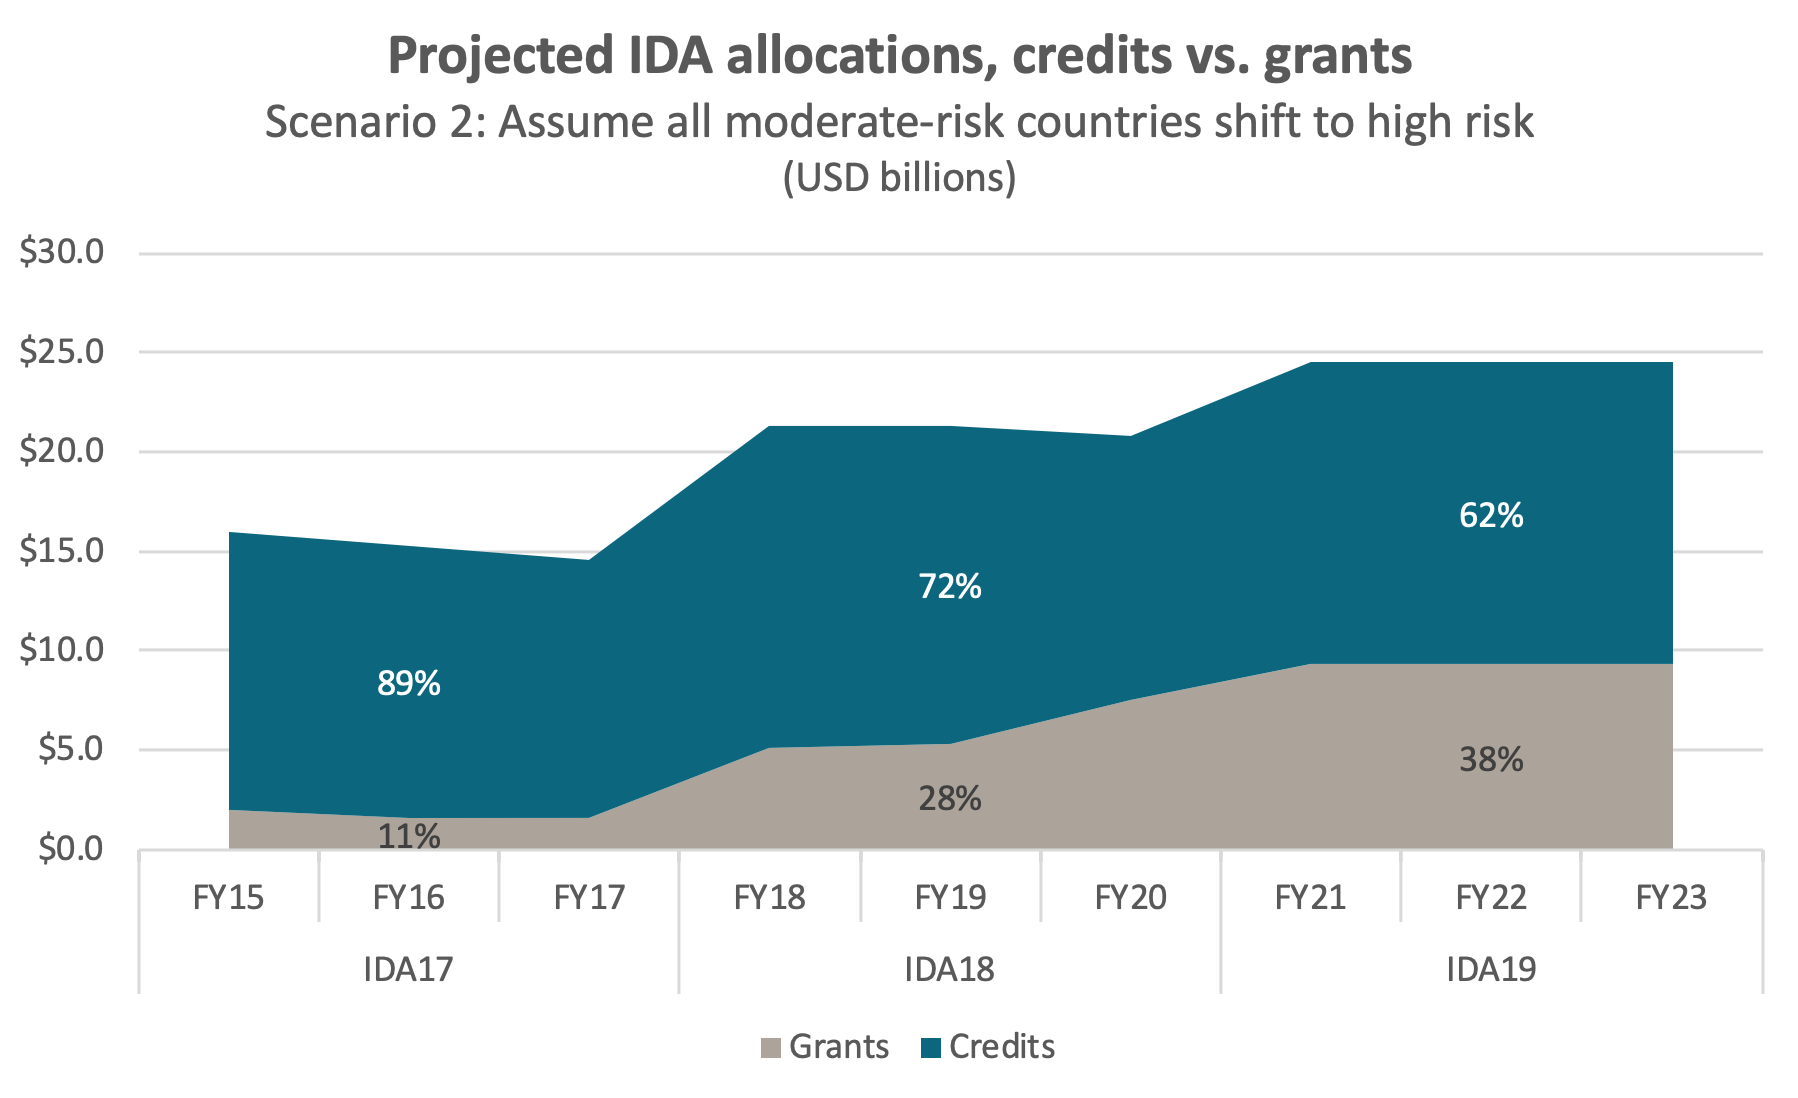 Projected IDA allocations under scenario 2, where moderate risk countries become high risk, with grants rising to 38%